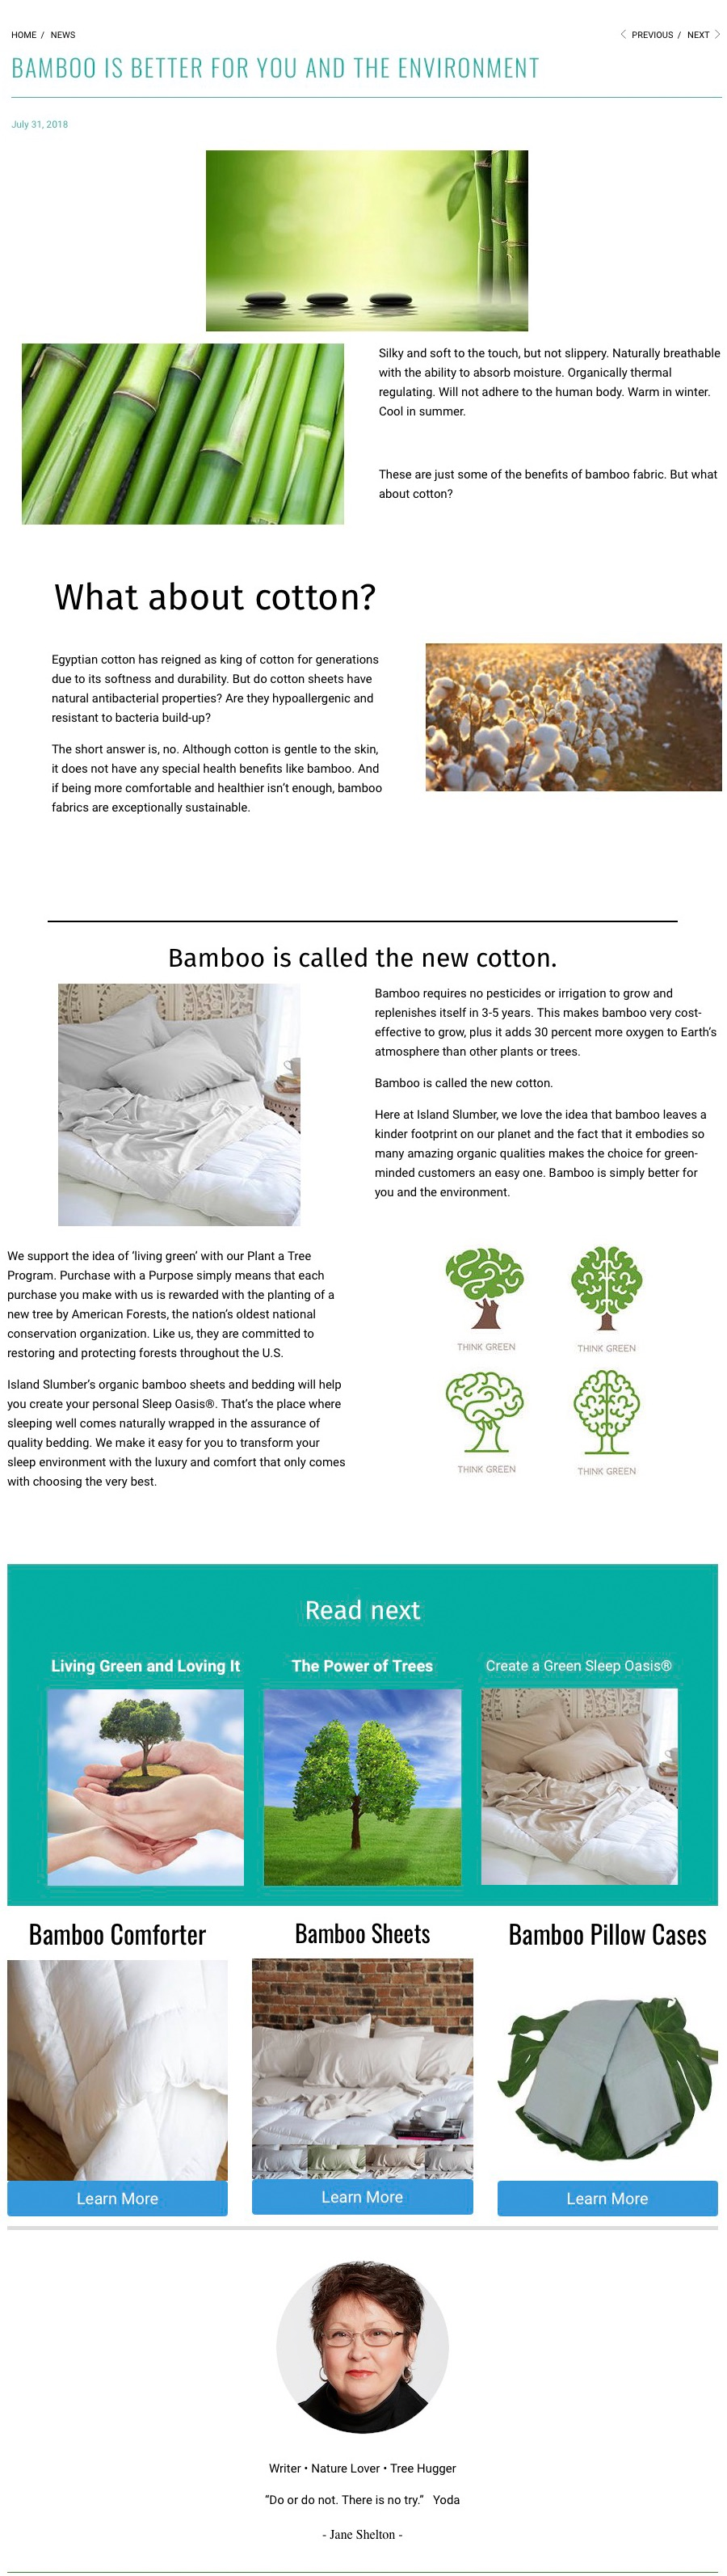 Screenshot of article from Island Slumber website on benefits of bamboo